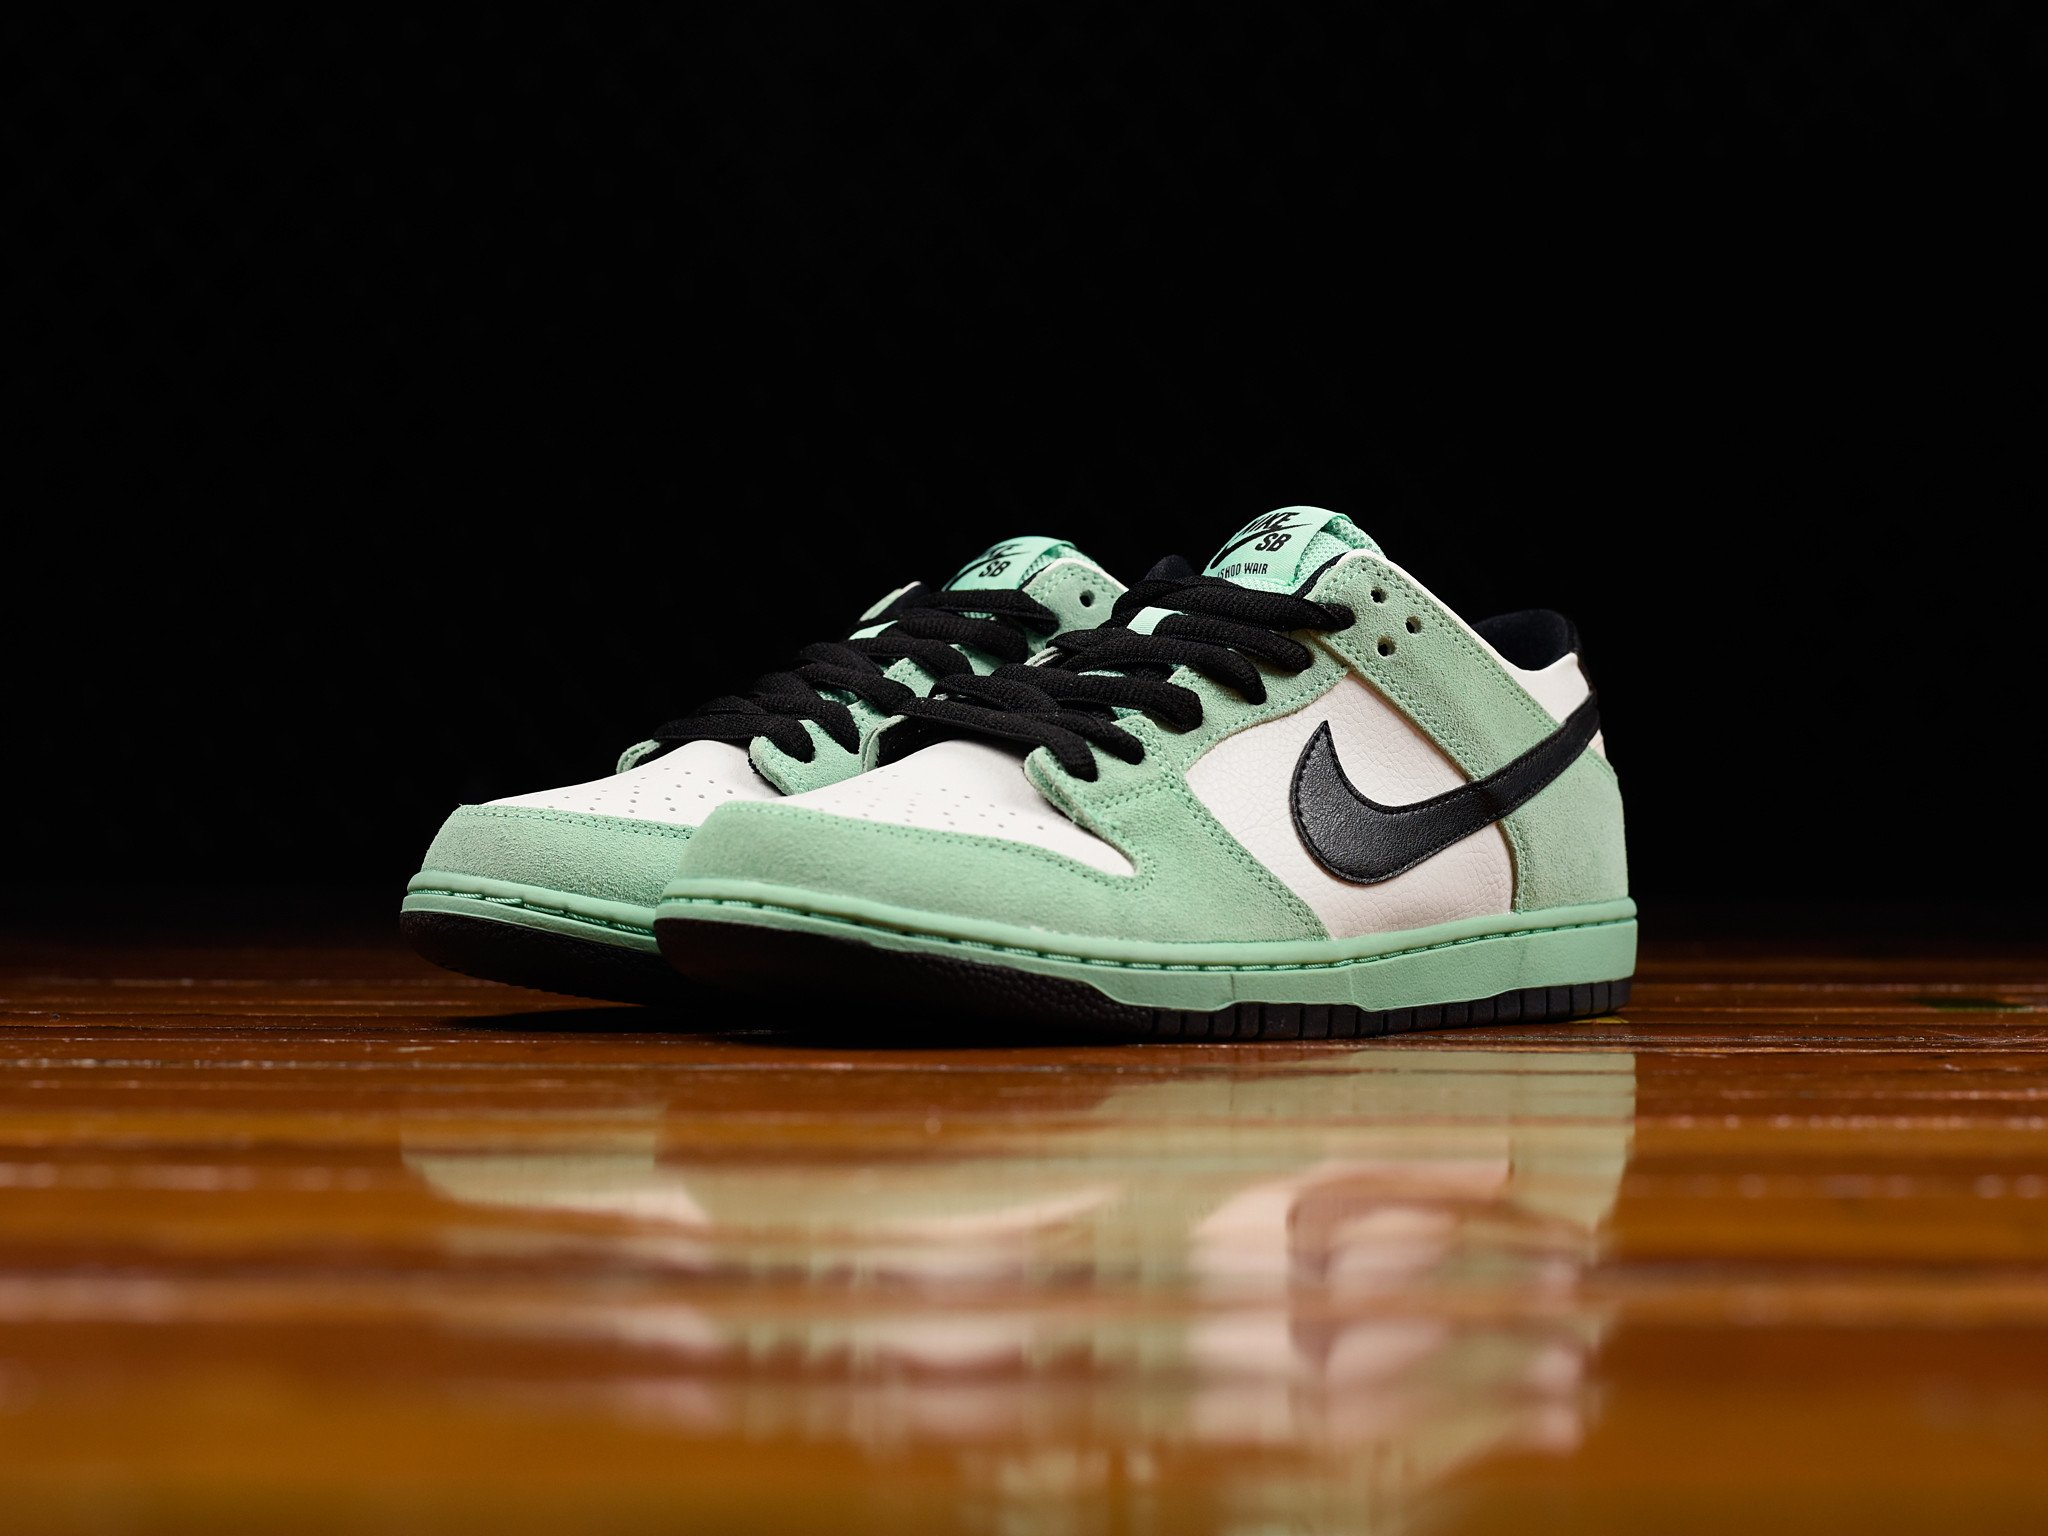 58f269b825e1 Nike Dunk Low Pro SB Sea Crystal - Air 23 - Air Jordan Release Dates ...